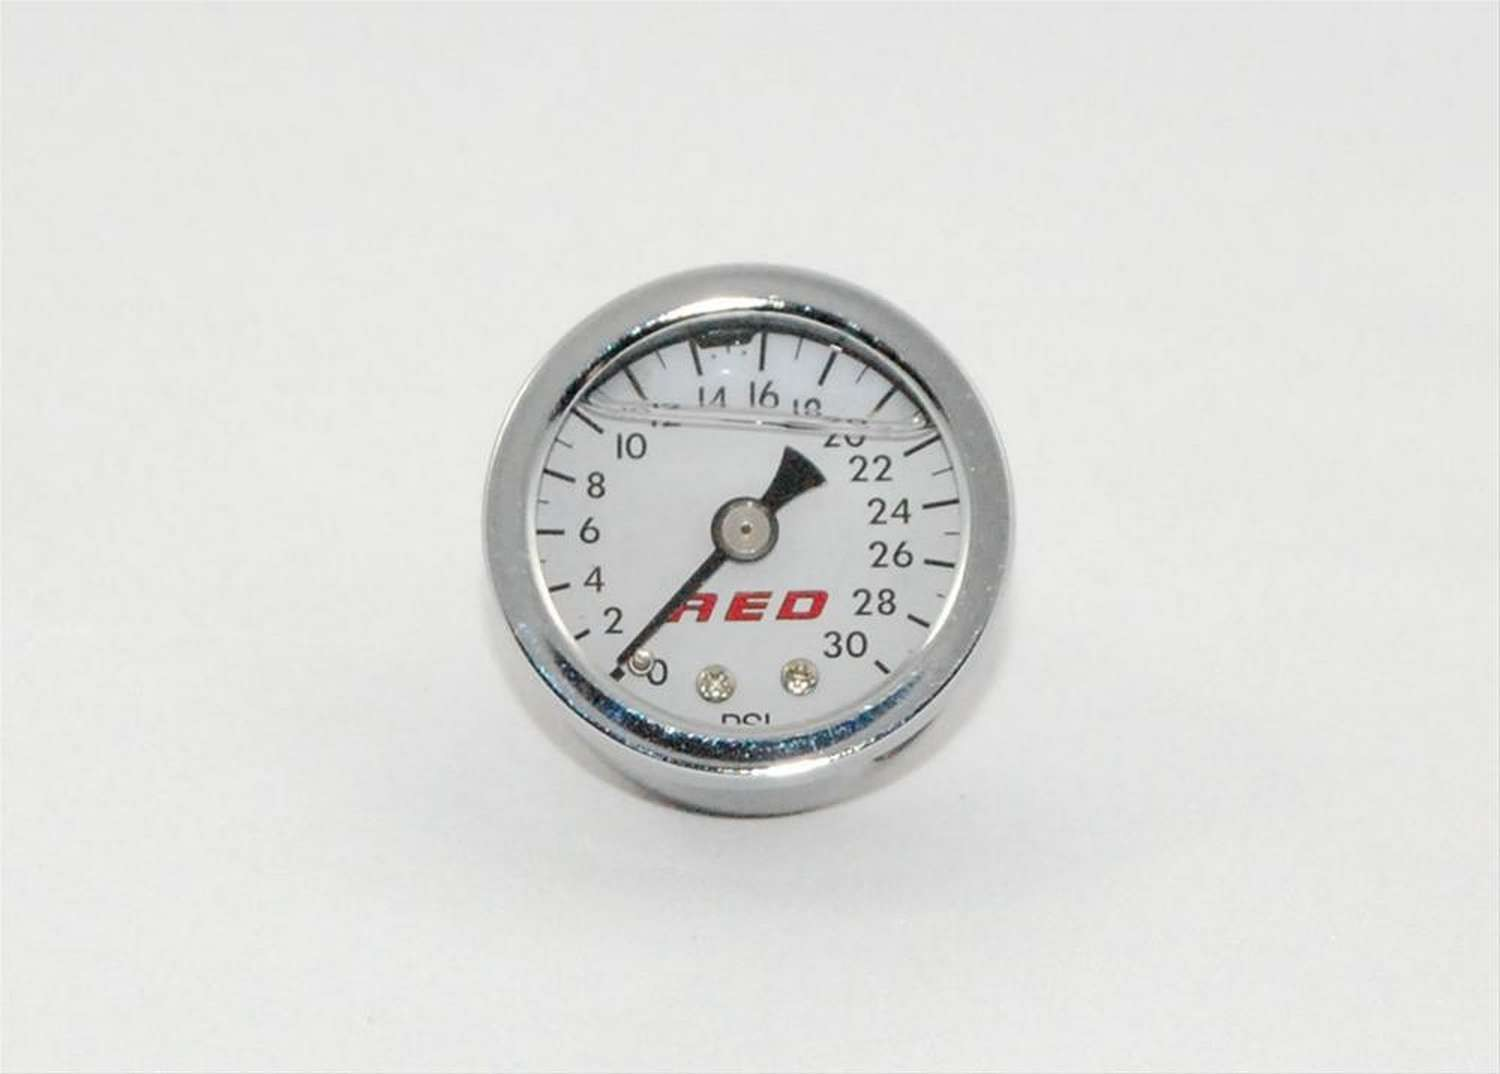 AED Performance 6103 Pressure Gauge, 0-30 psi, Mechanical, Analog, 1-1/2 in Diameter, Liquid Filled, 1/8 in NPT Port, White Face, Each